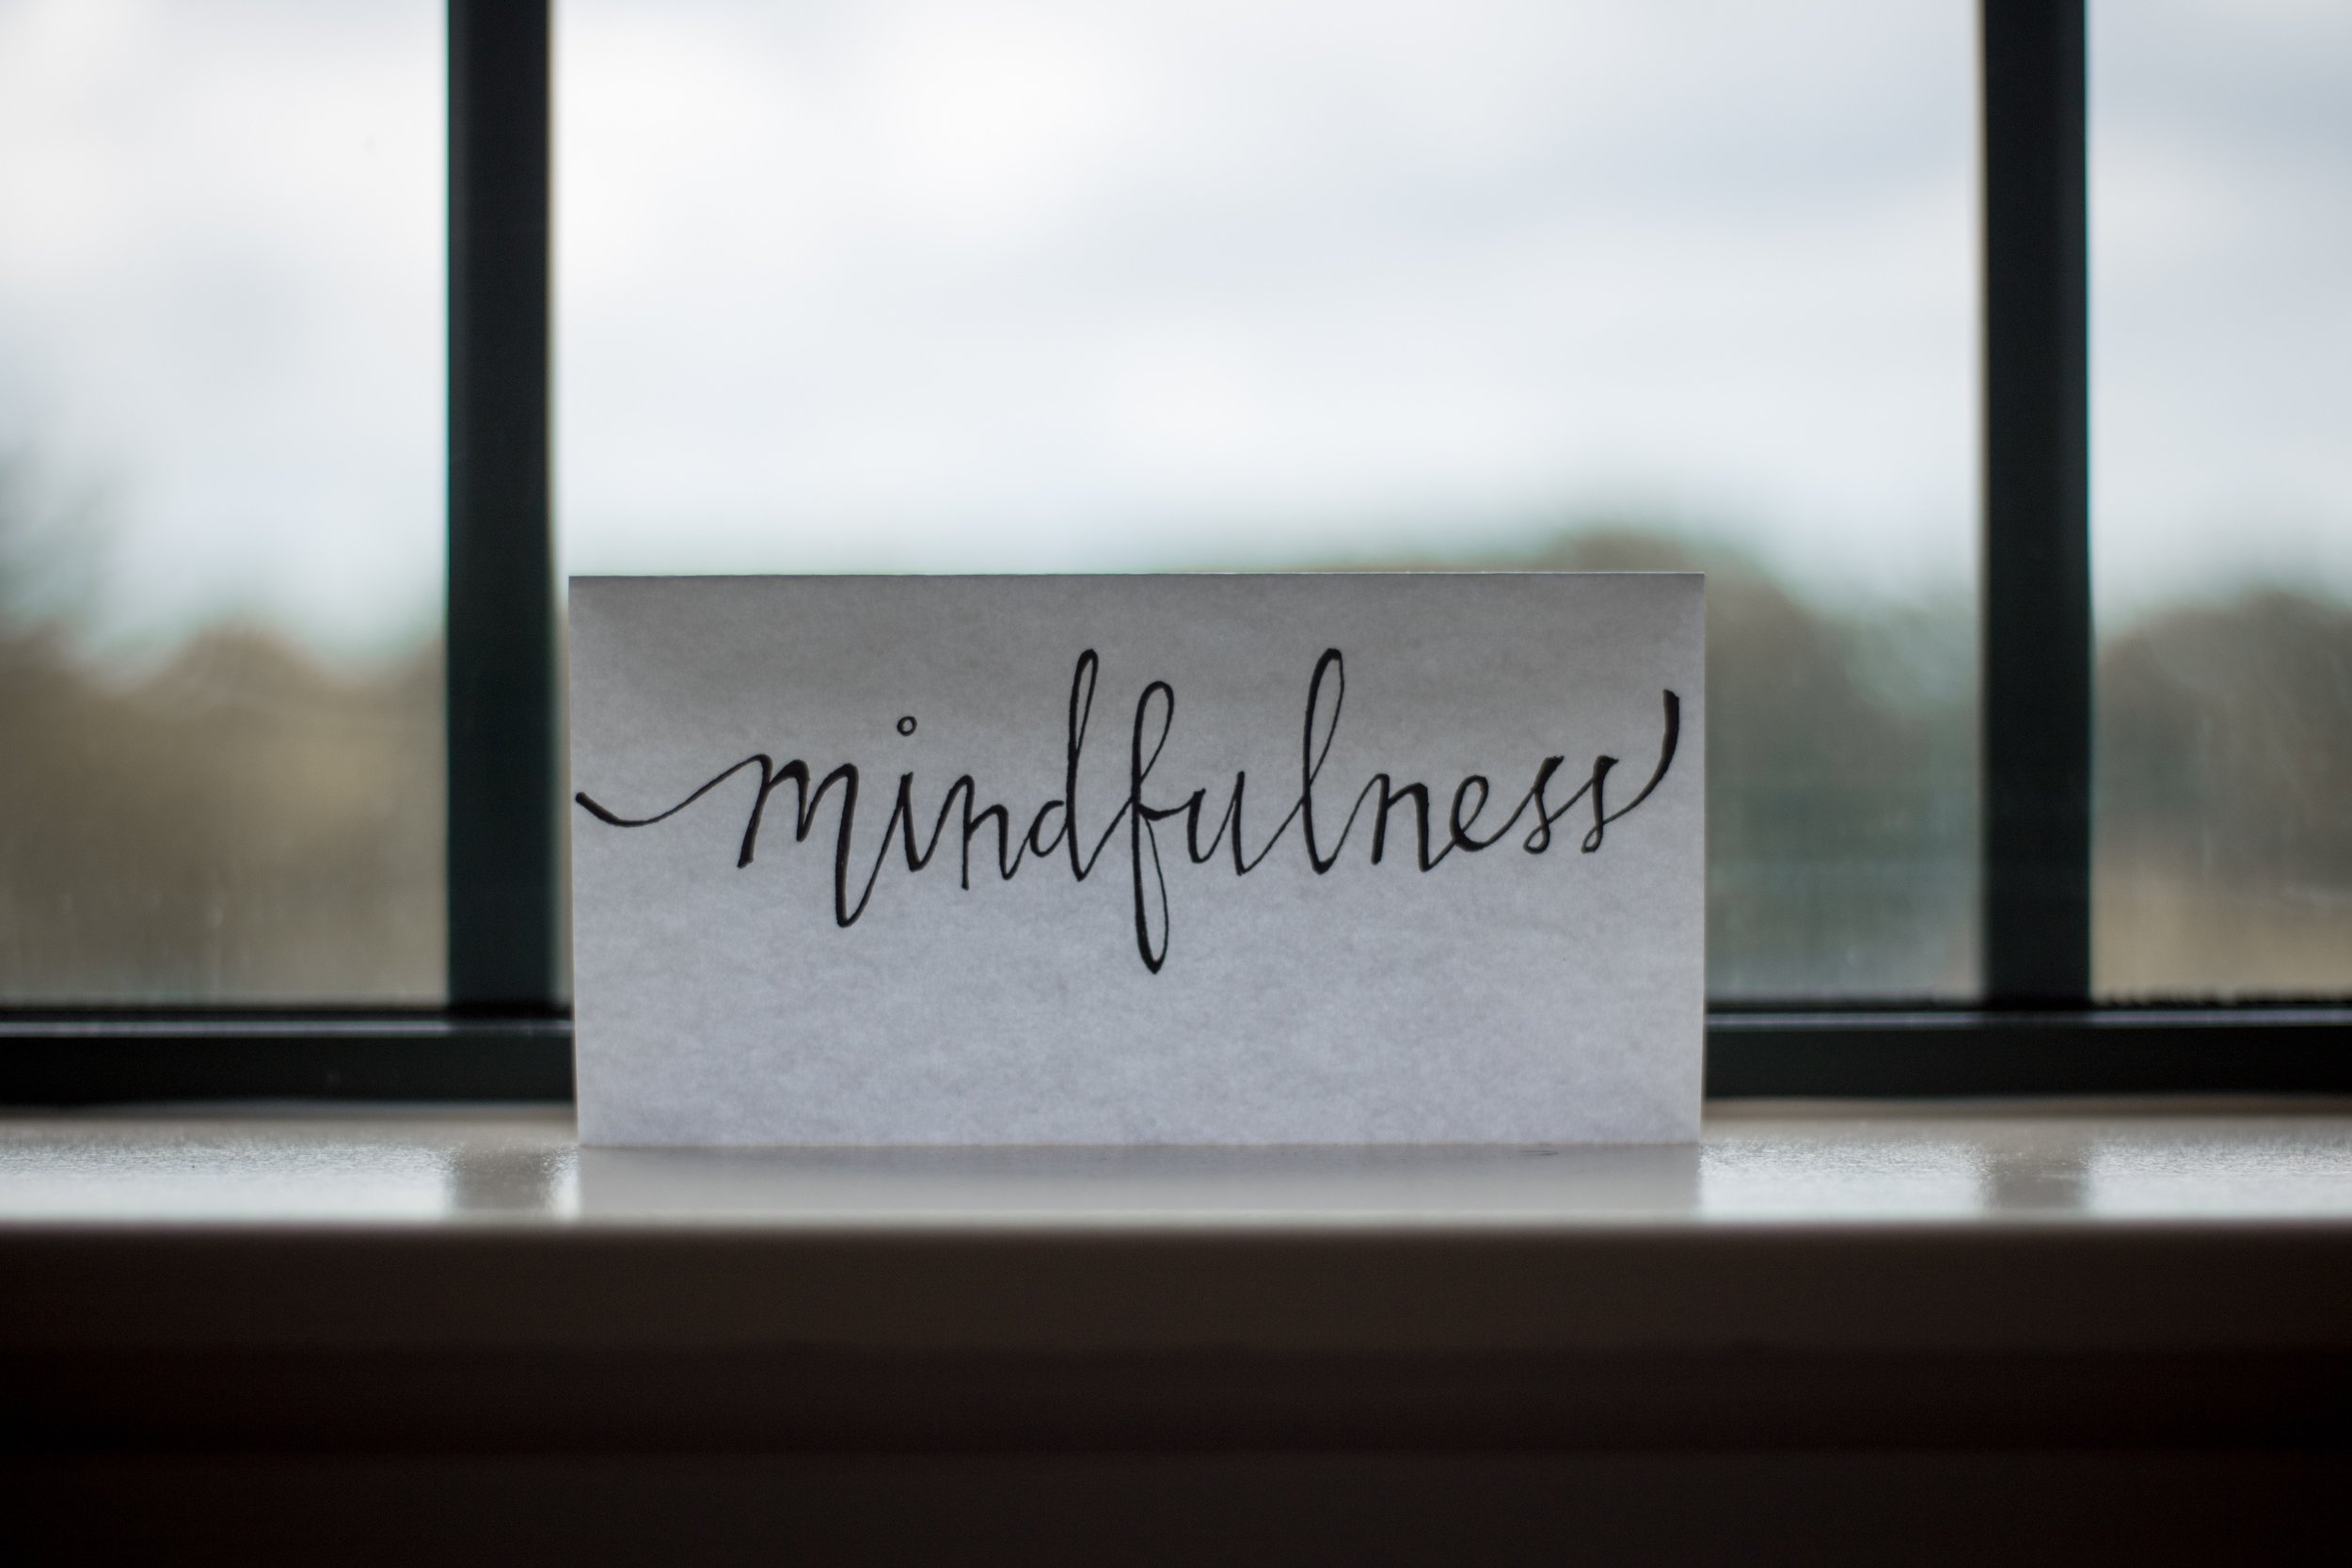 Confused about mindfulness? - Inviting you to share your voice